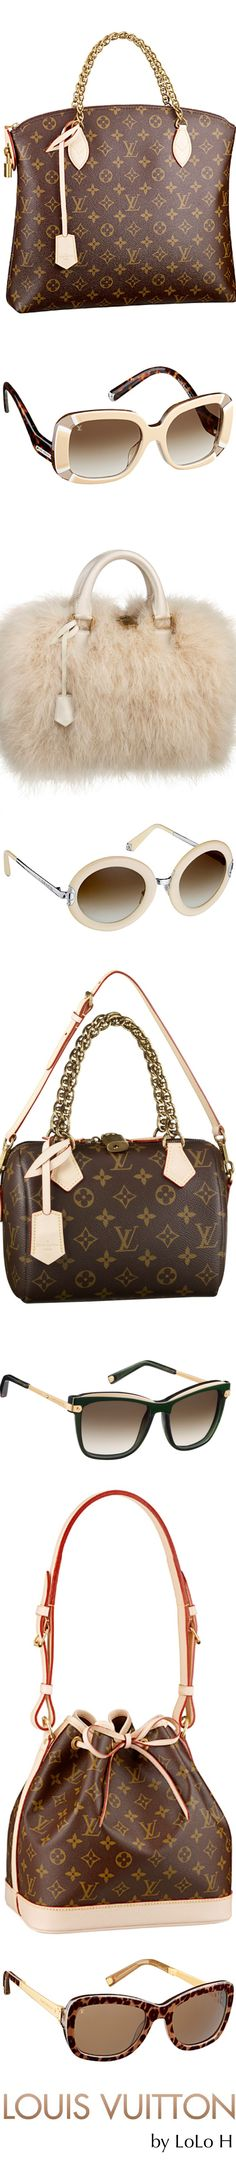 2015 New LV Collection for Louis Vuitton.